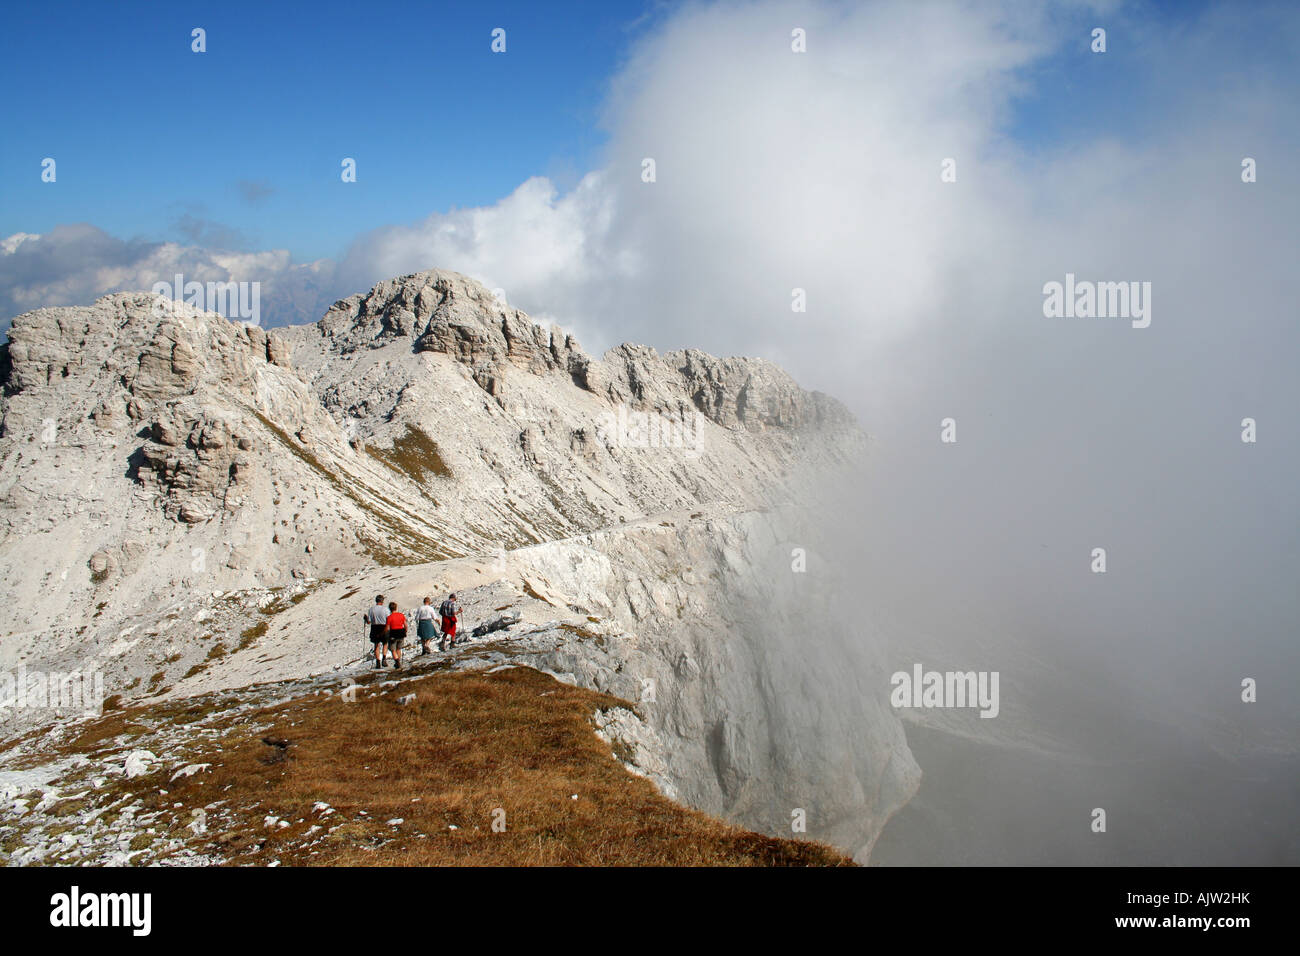 Walkers on the Alta Via 1 in mist on Cima di Zita, Dolomiti Bellunesi, Veneto, Italy - Stock Image